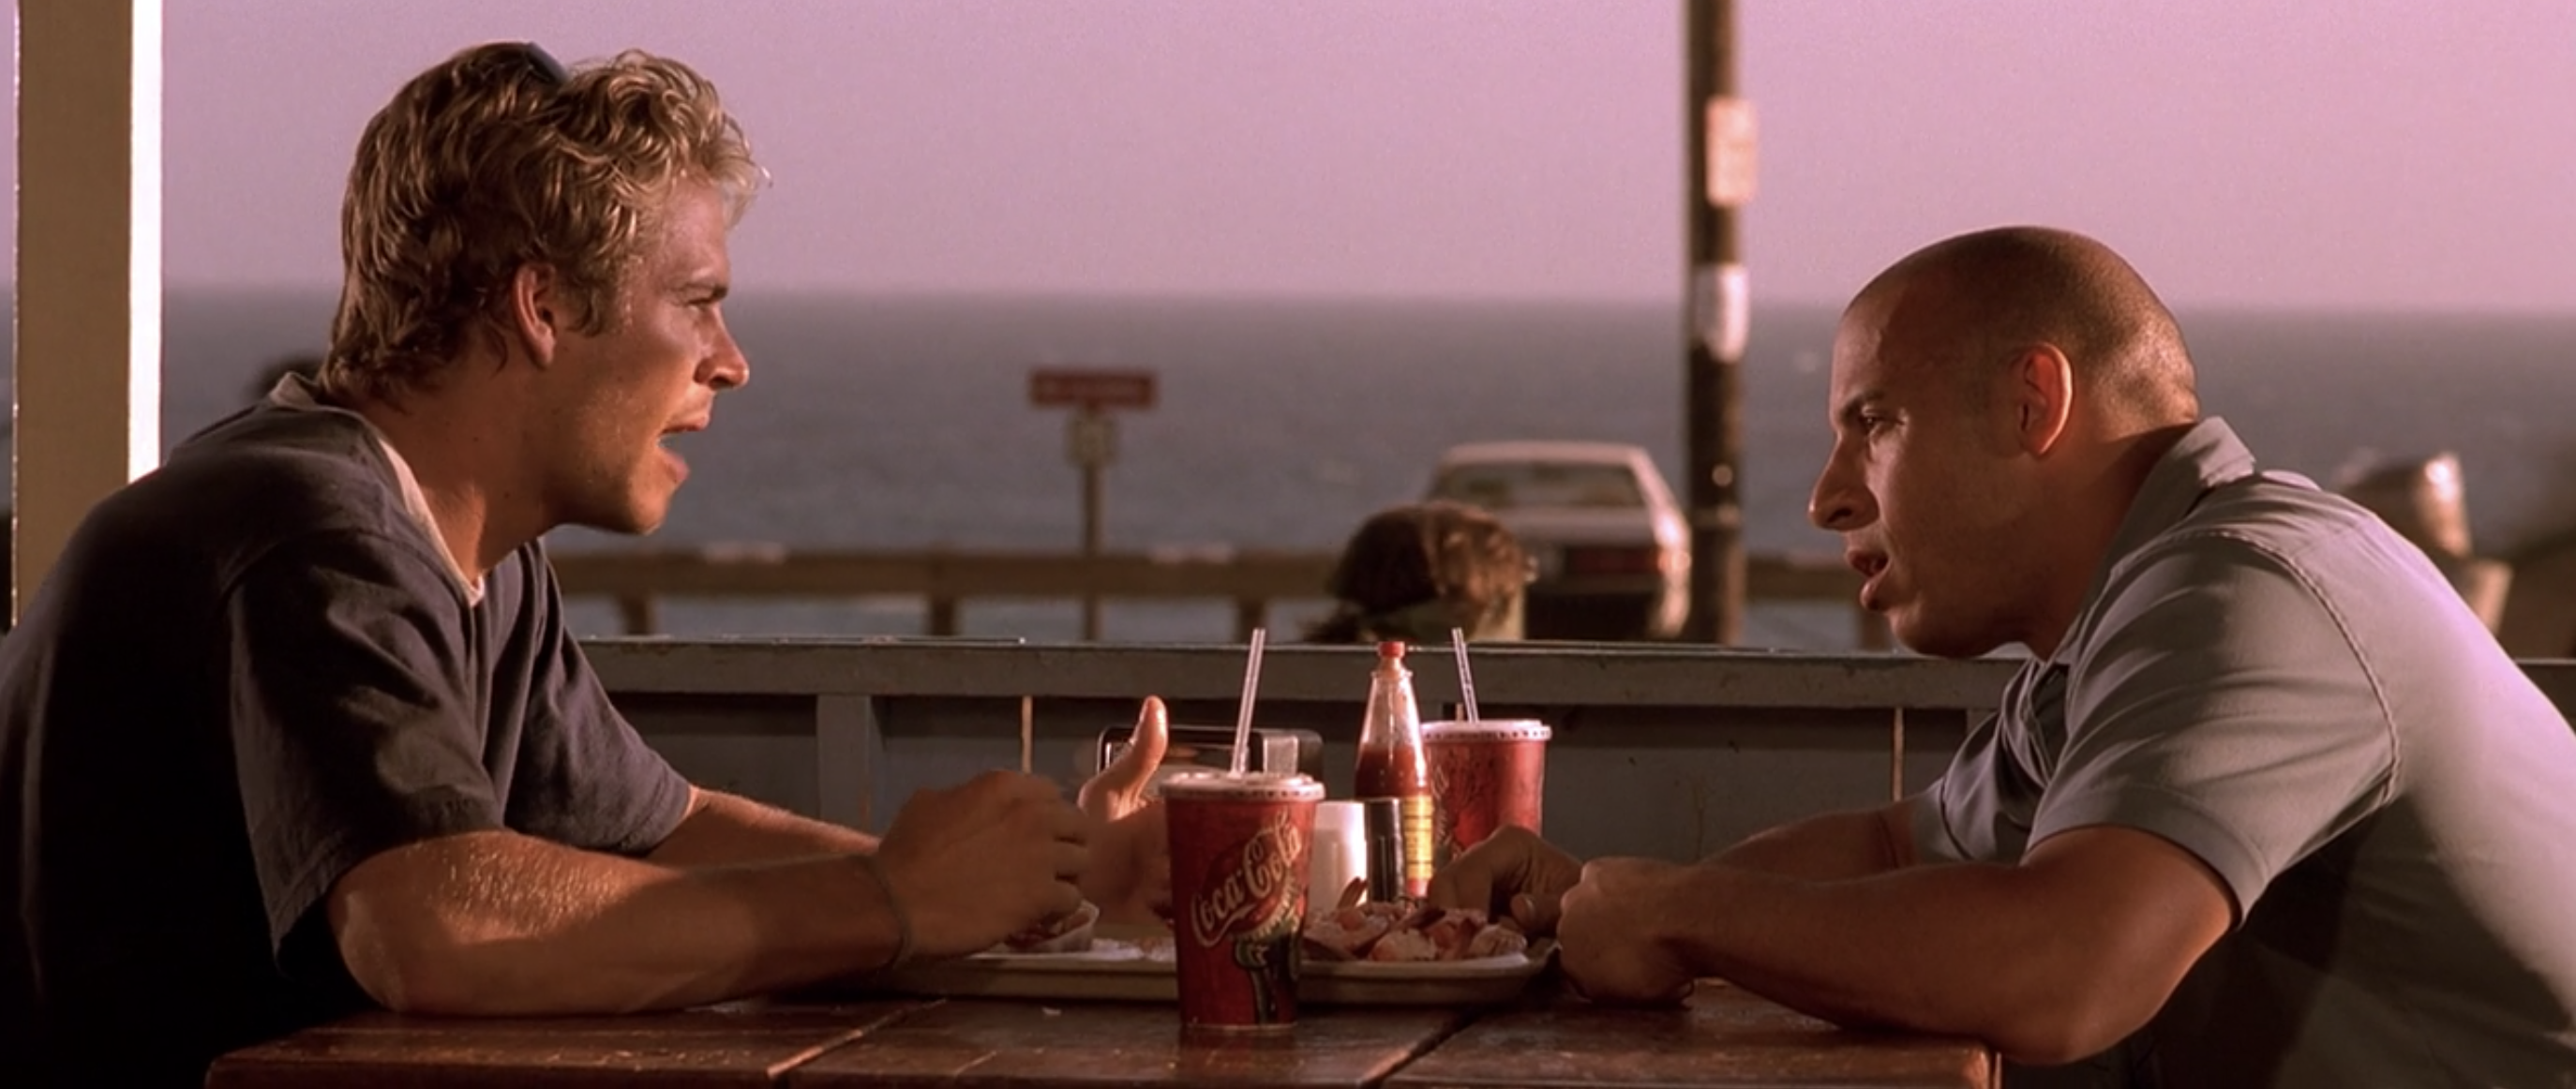 Paul Walker and VinDiesel sit across from each other at a table with a tray of food and drinks in front of them as Brian and Dom